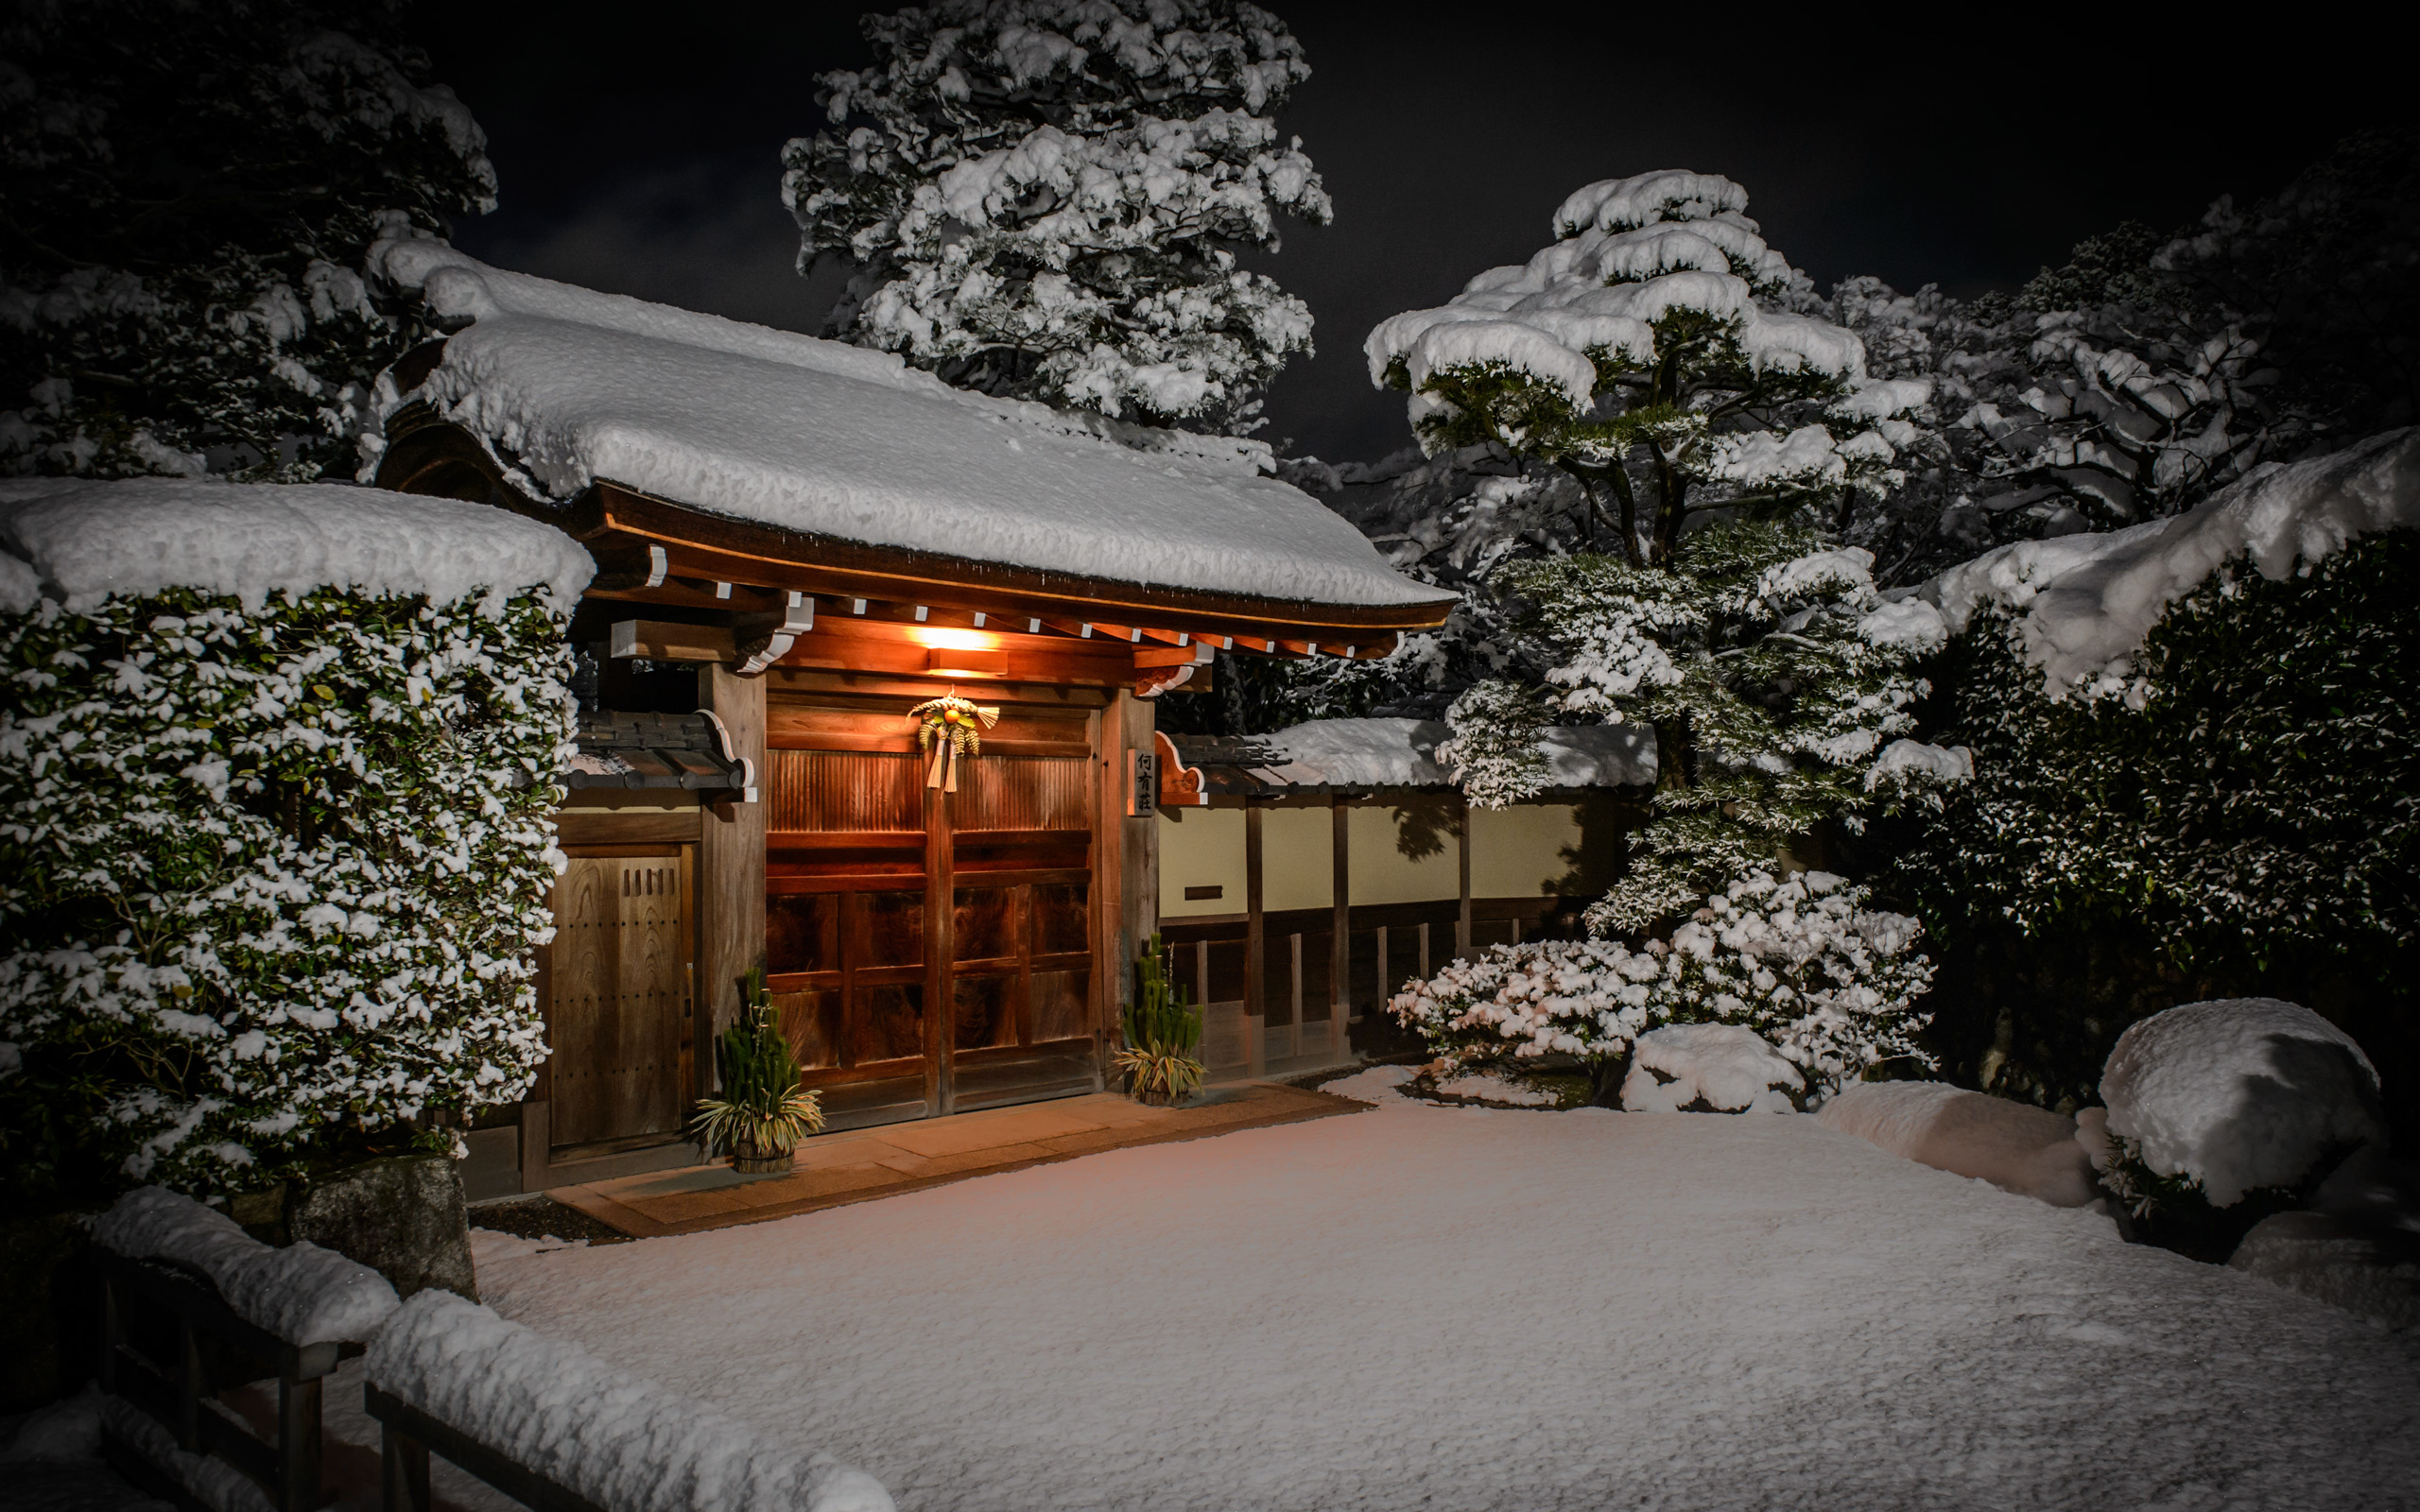 Wallpaper Falling Snow Jeffrey Friedl S Blog 187 Kyoto At Night During A Heavy Snow